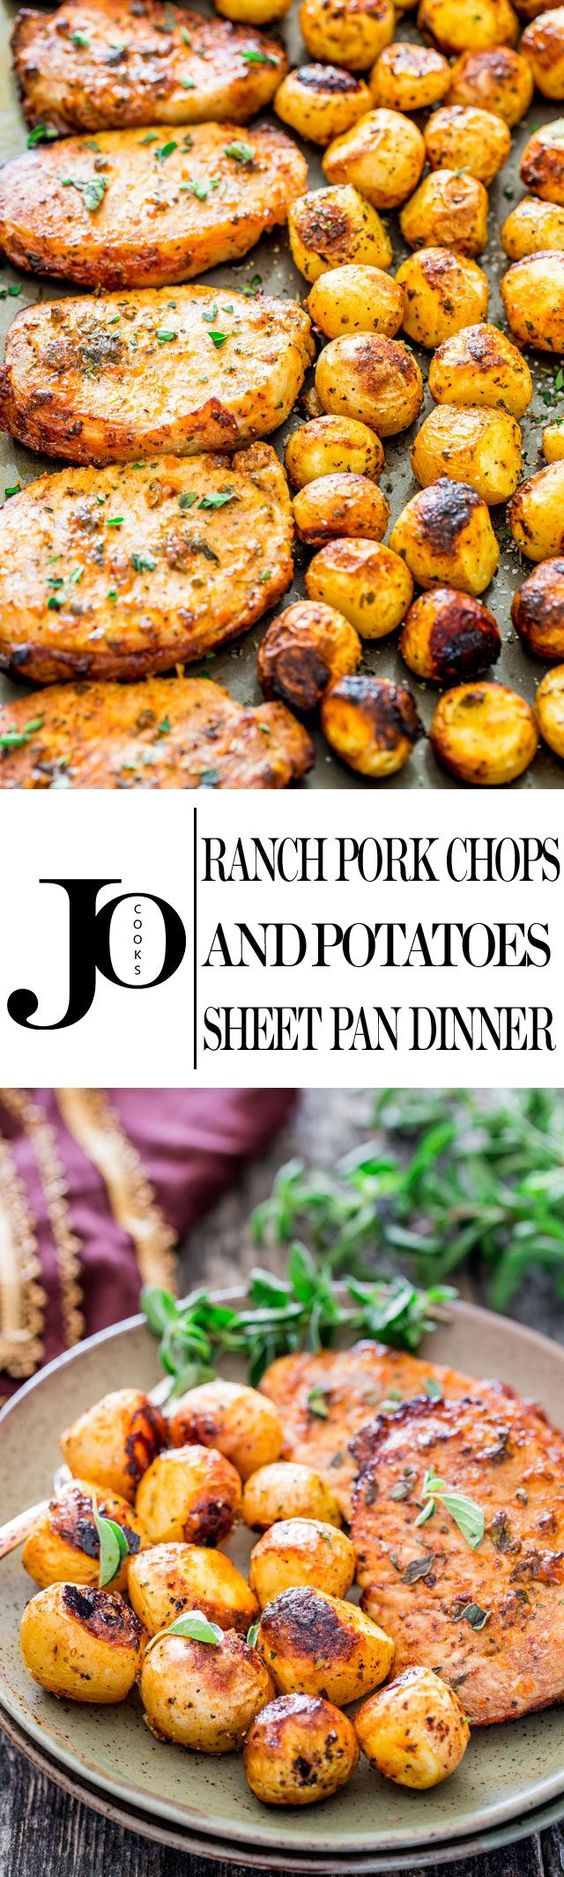 Ranch Pork Chops and Potatoes Sheet Pan Dinner Recipe via Jo Cooks - get out your sheet pan to make this delicious and easy dinner with ranch pork chops and potatoes! The BEST Sheet Pan Suppers Recipes - Easy and Quick Family Lunch and Simple Dinner Meal Ideas using only ONE PAN! #sheetpansuppers #sheetpanrecipes #sheetpandinners #onepanmeals #healthyrecipes #mealprep #easyrecipes #healthydinners #healthysuppers #healthylunches #simplefamilymeals #simplefamilyrecipes #simplerecipes